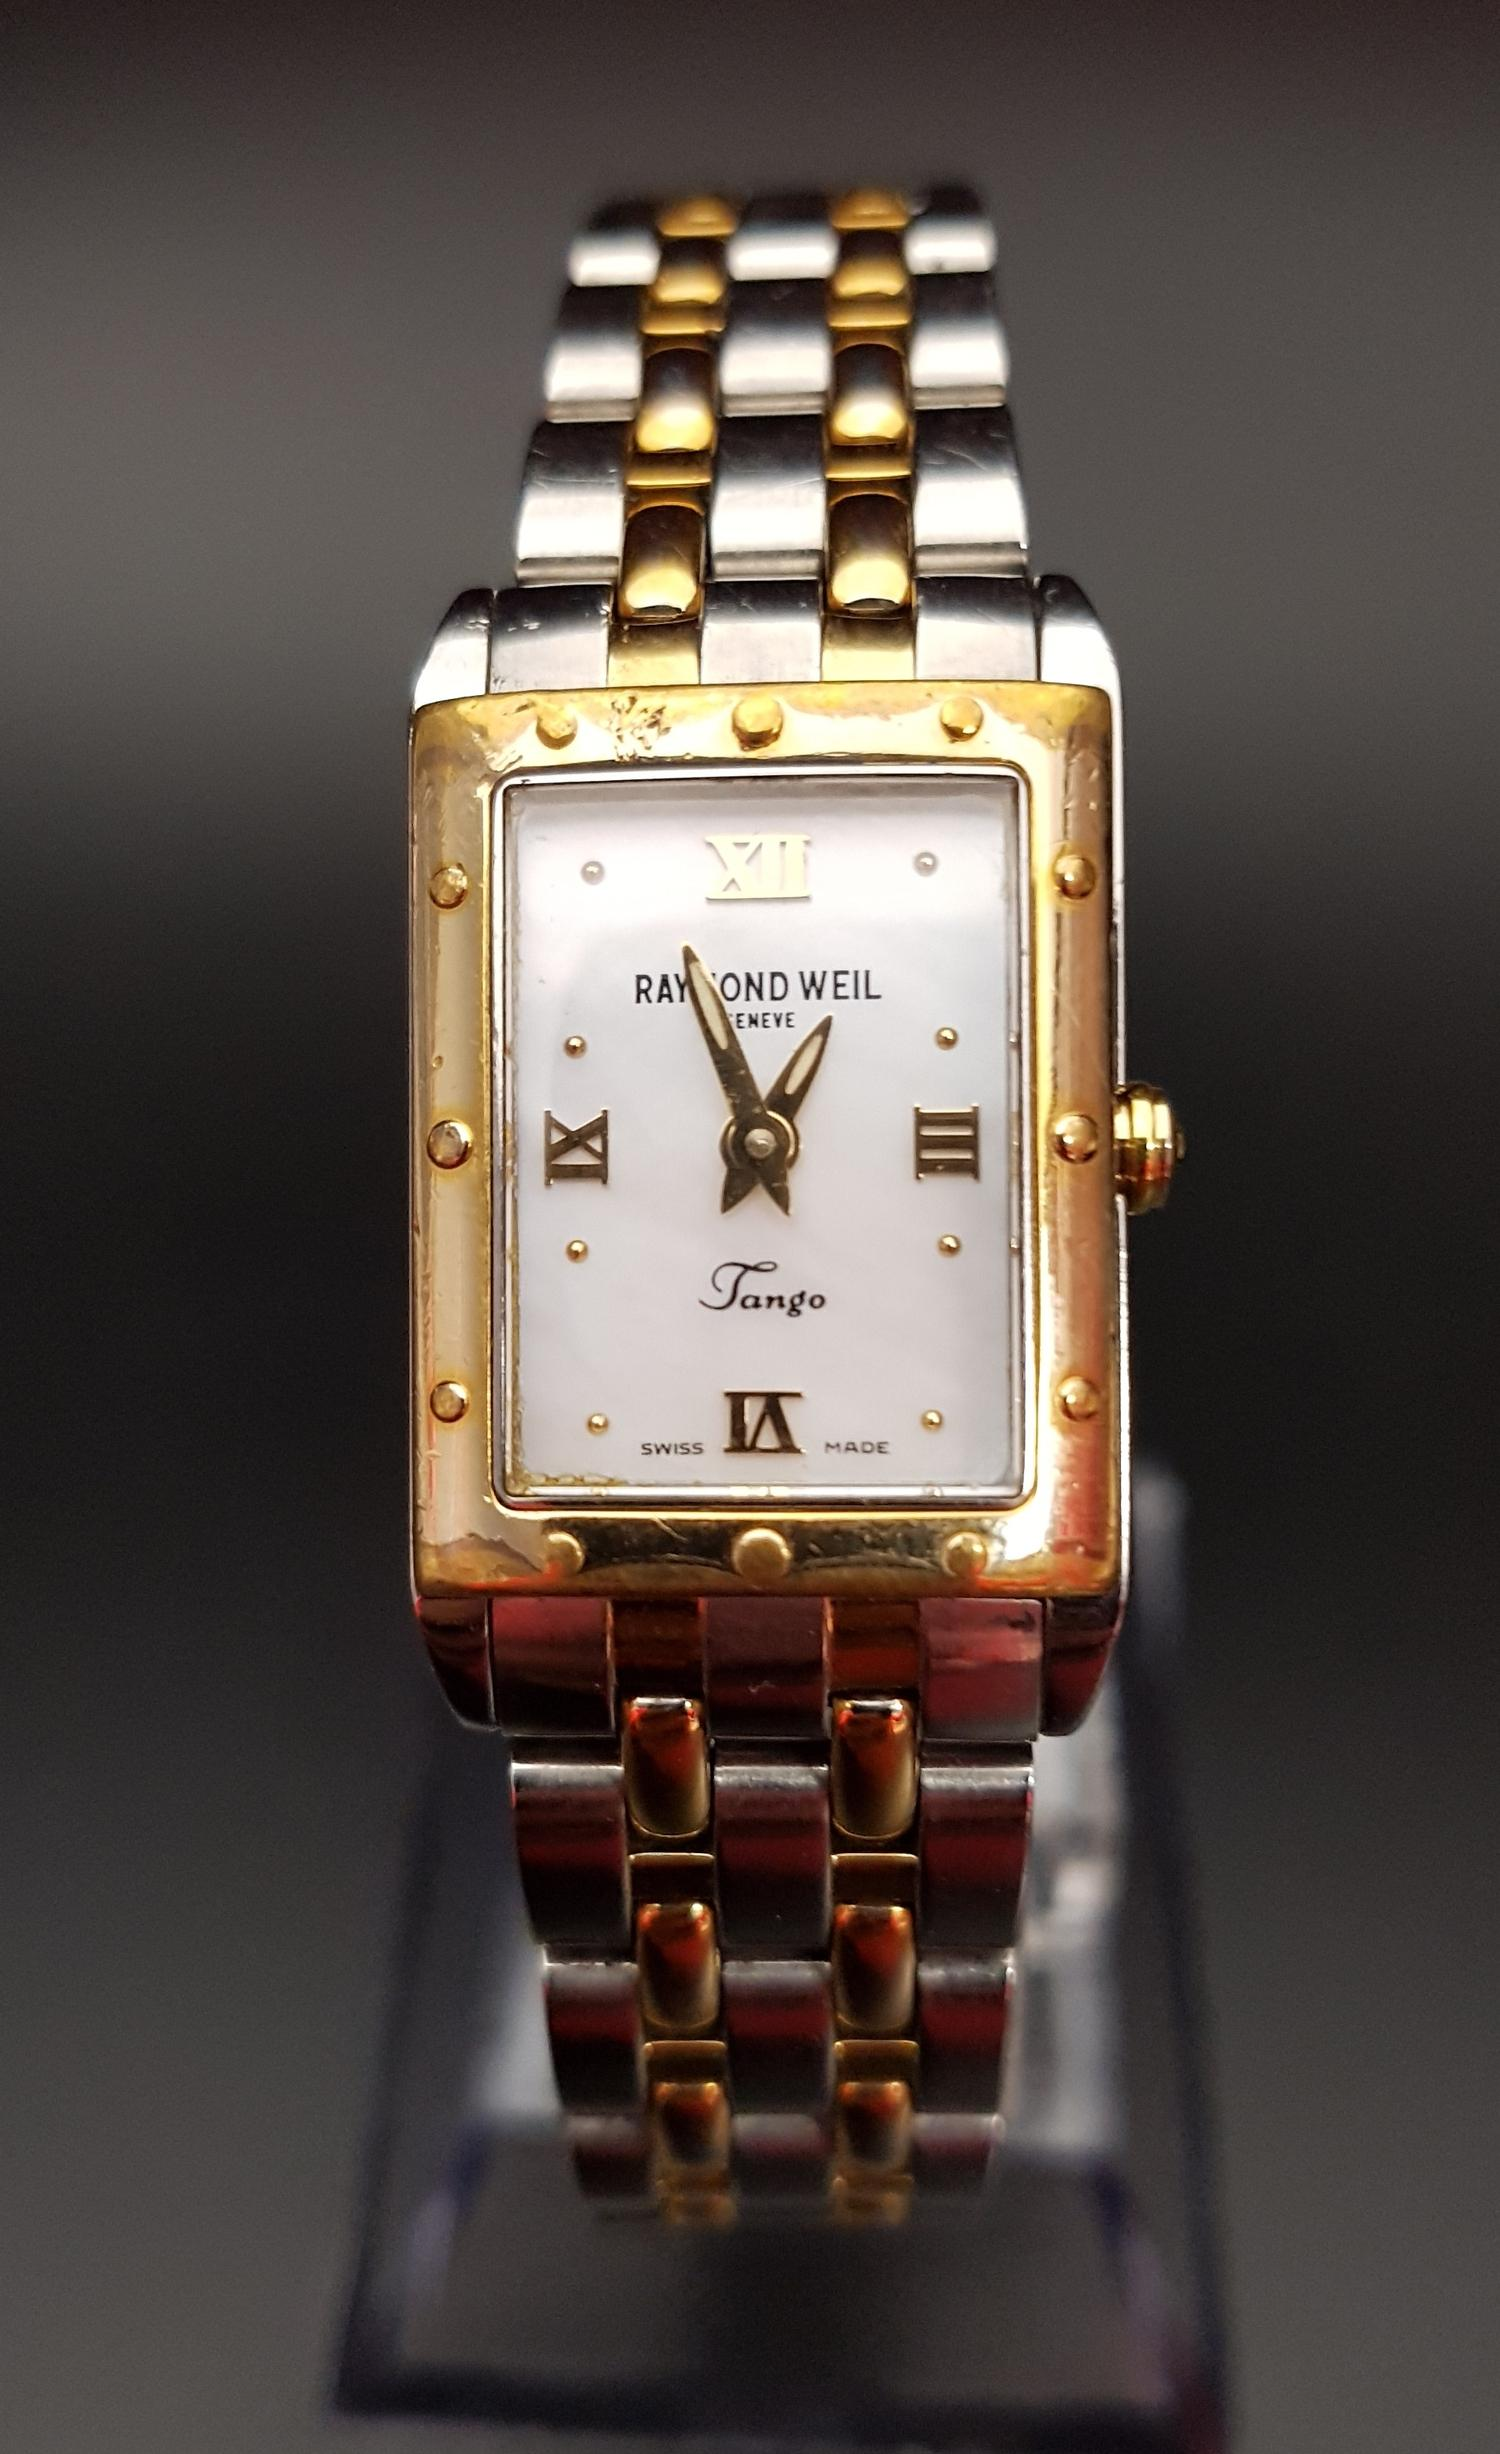 Lot 102 - LADIES RAYMOND WEIL TANGO COLLECTION WRISTWATCH the mother of pearl dial with Roman numerals at